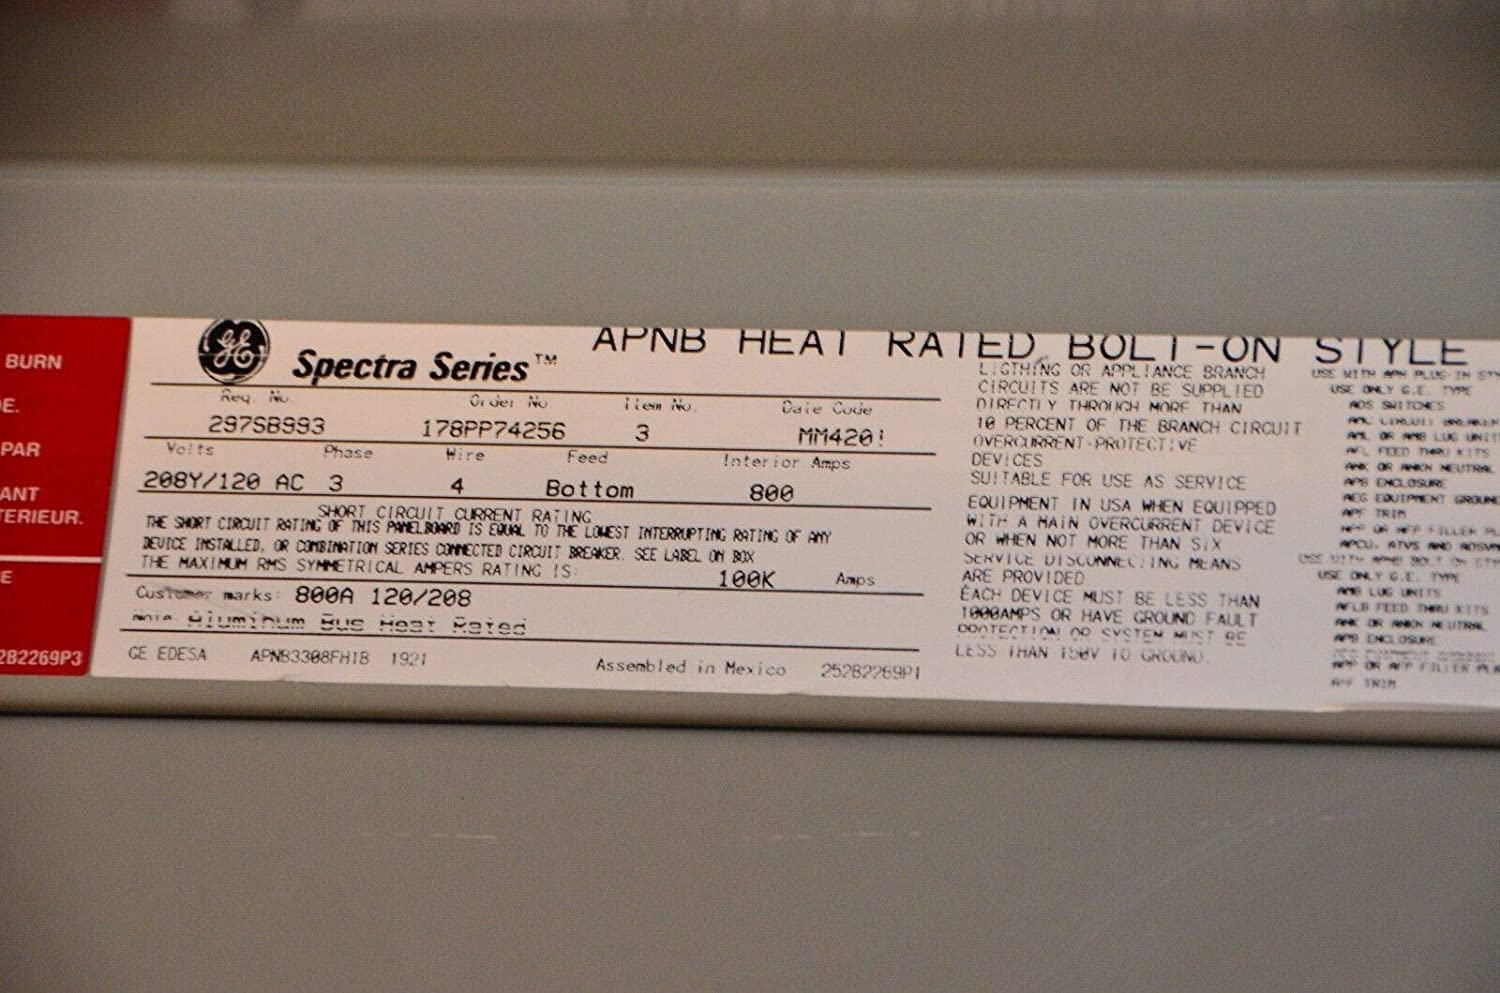 GE Spectra Series APNB Heat Rated Bolt-On Powered Panelboard